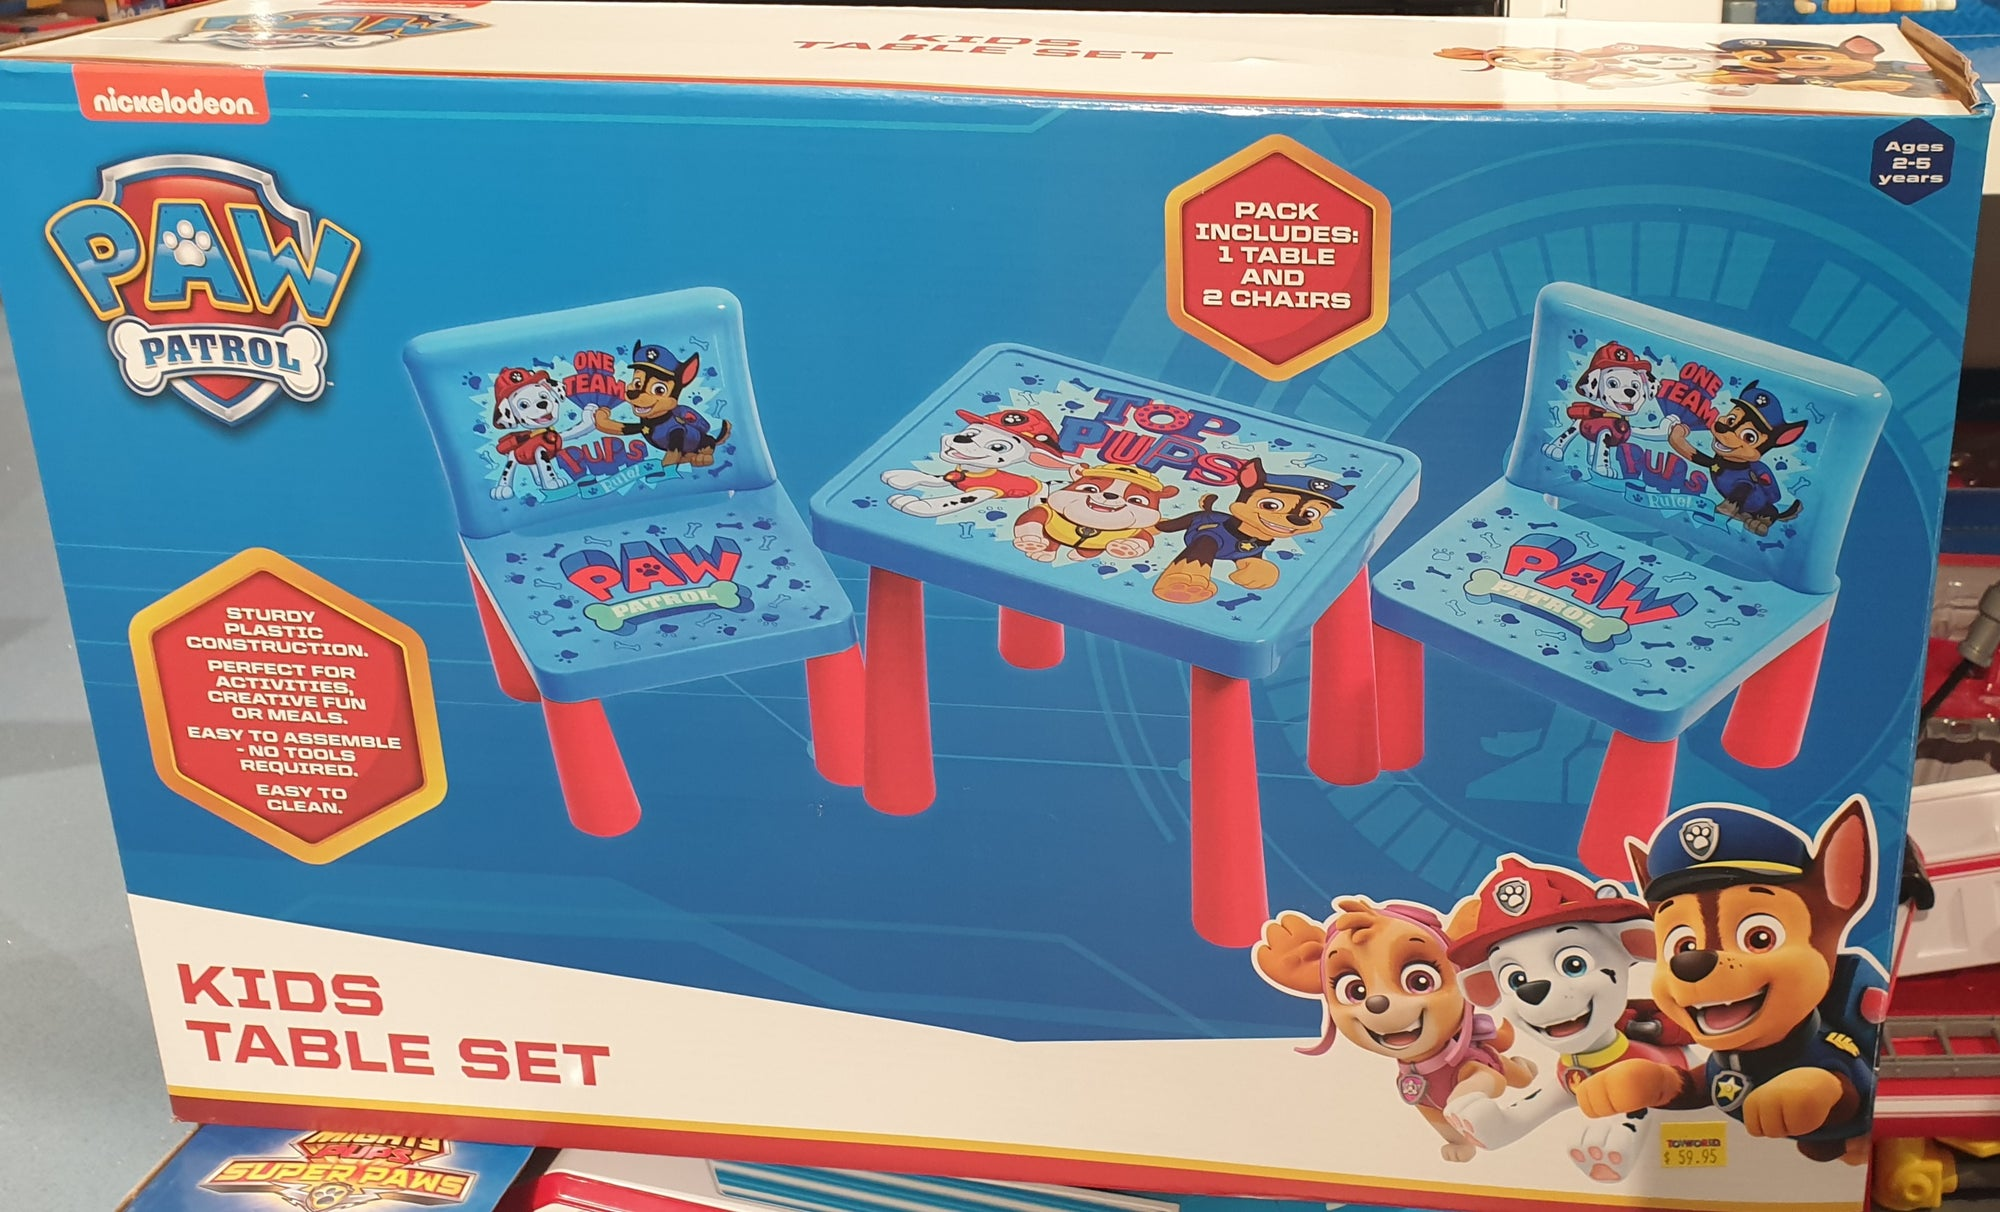 PAW PATROL PLASTIC TABLE & 2 CHAIRS